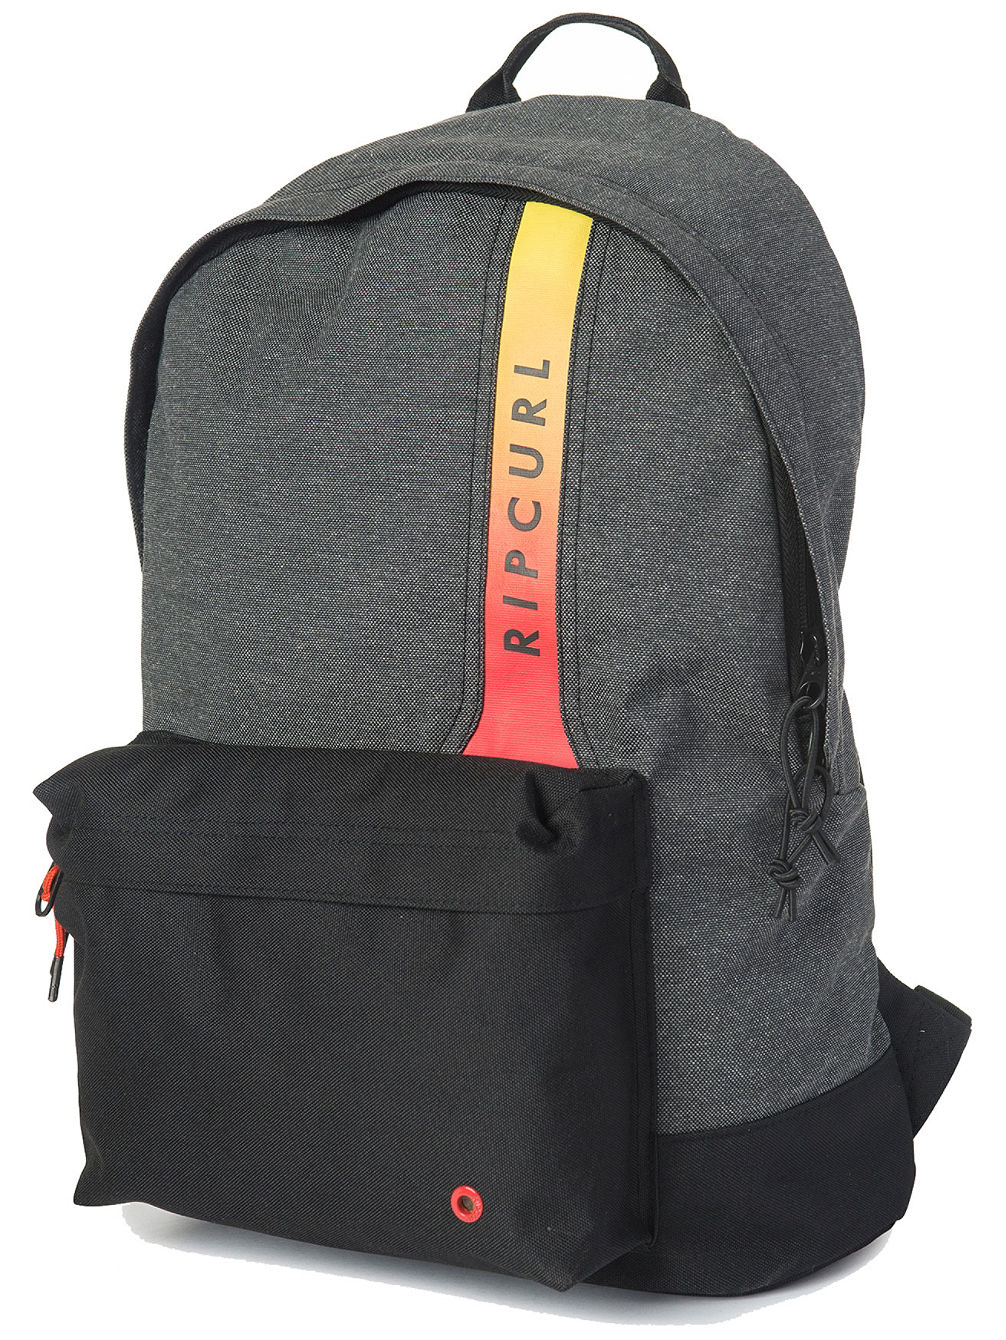 Dome Owen BS Backpack